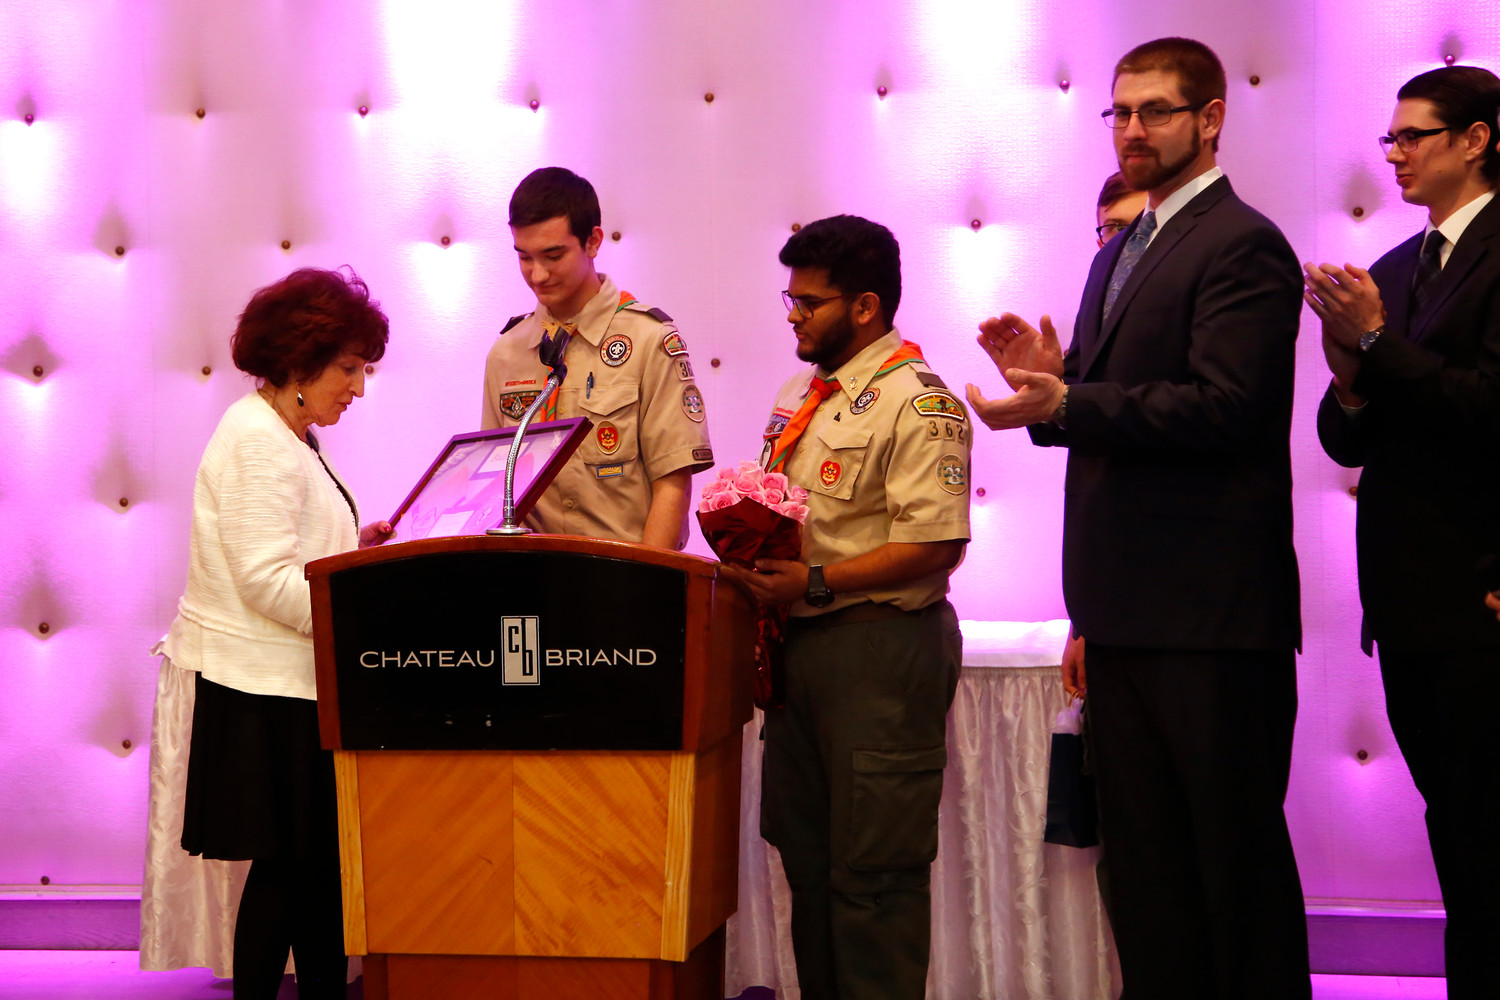 Gonsalves was honored by local cub scouts for her dedication to the community.